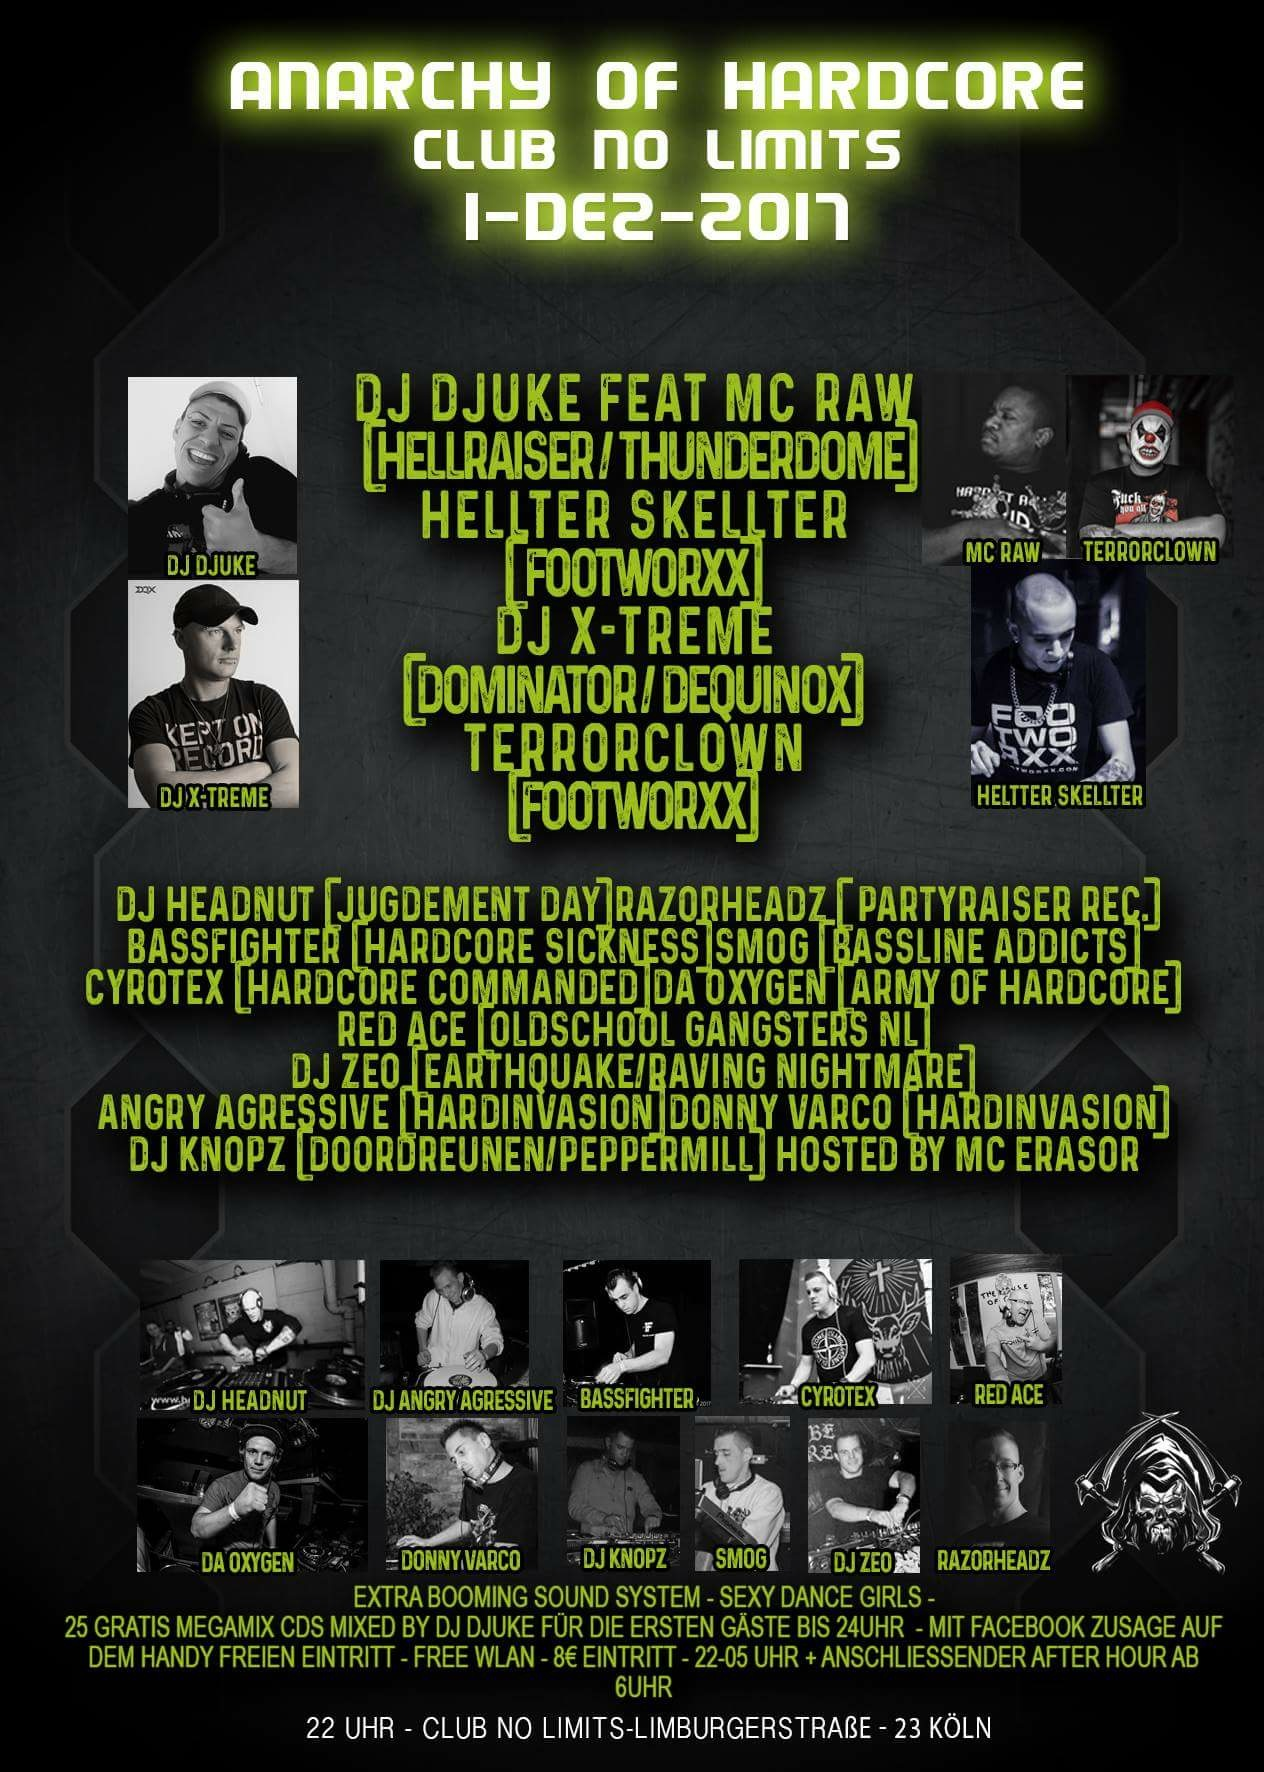 Anarchy of hardcore - Tickets, line-up, timetable & info